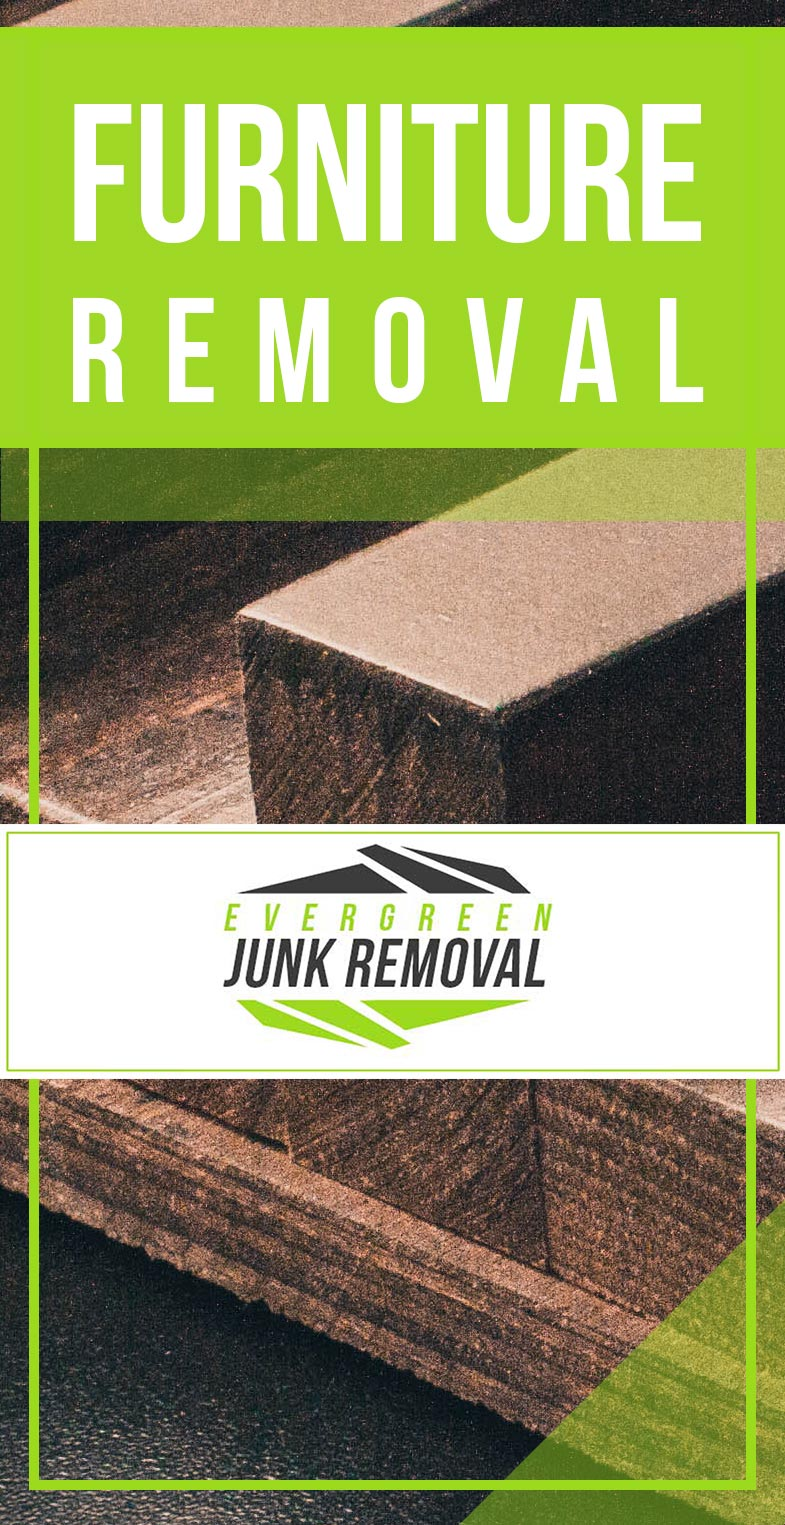 Junk Removal Palm Beach Shores Furniture Removal